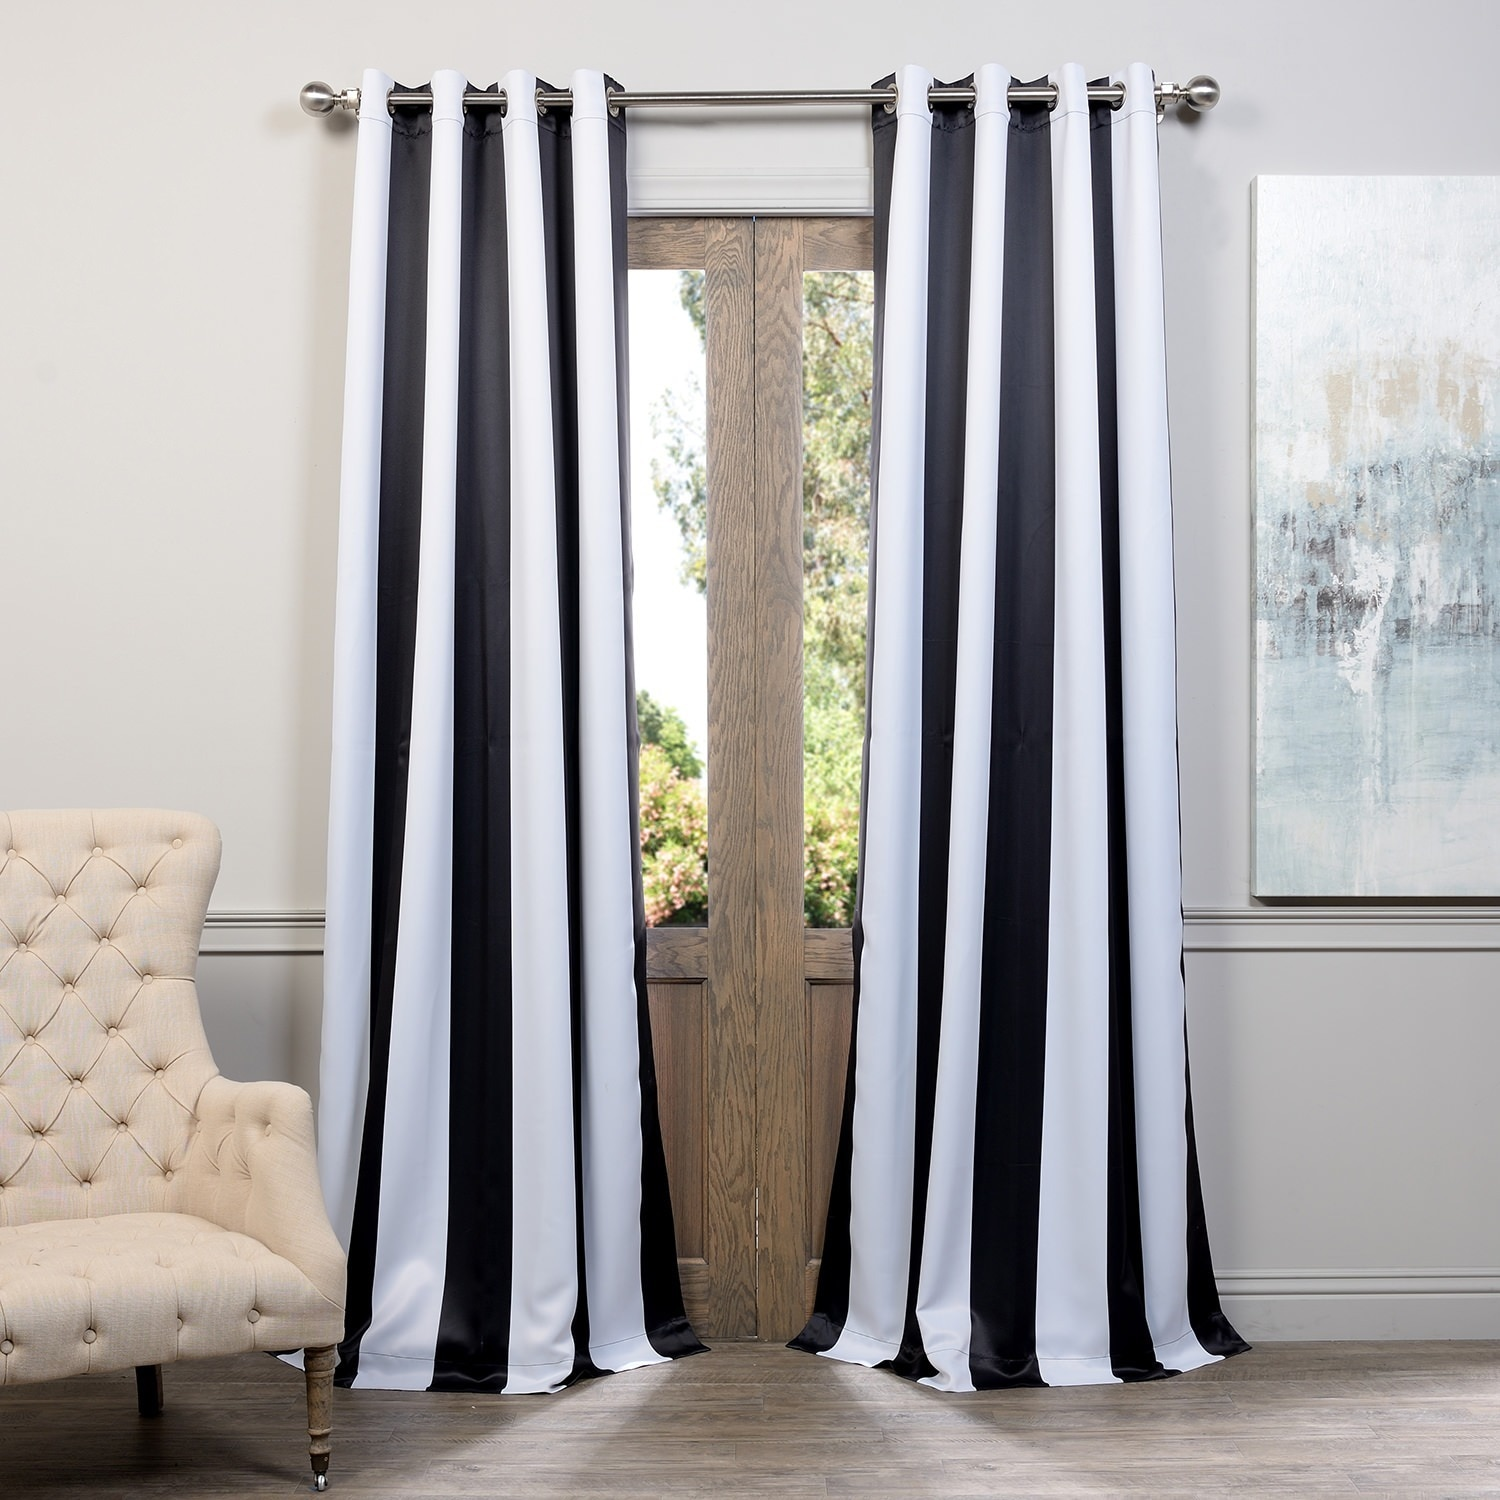 pdx thermal rae panel curtain curtains rod window blackout simone striped lola single viv reviews wayfair treatments pocket